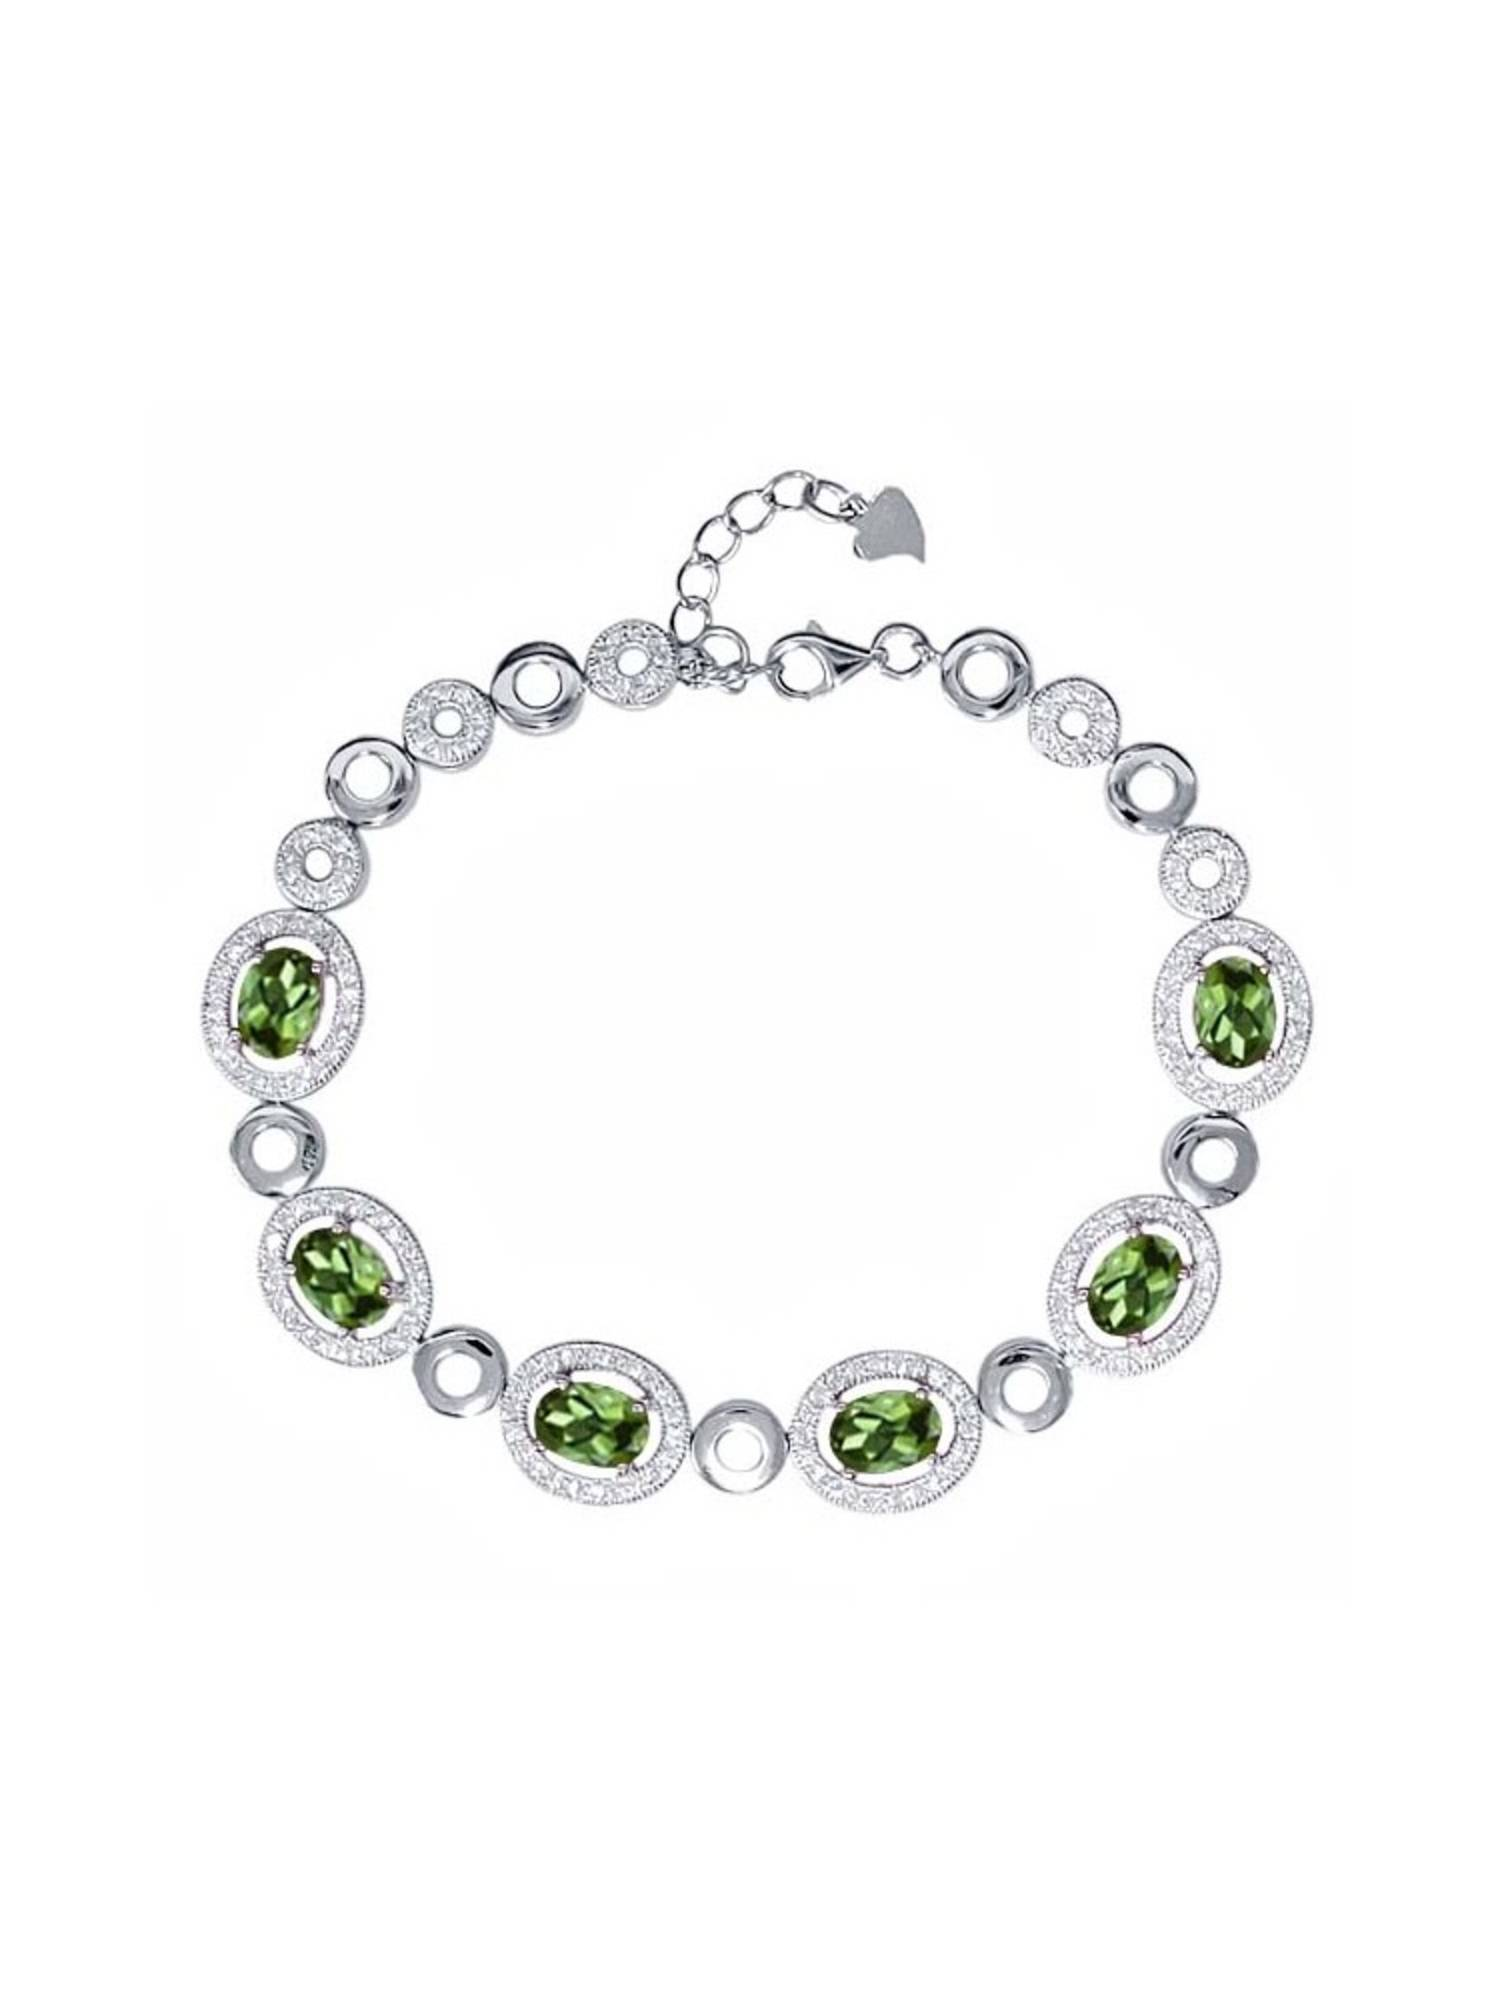 7.02 Ct Oval Green Tourmaline 925 Sterling Silver Bracelet by